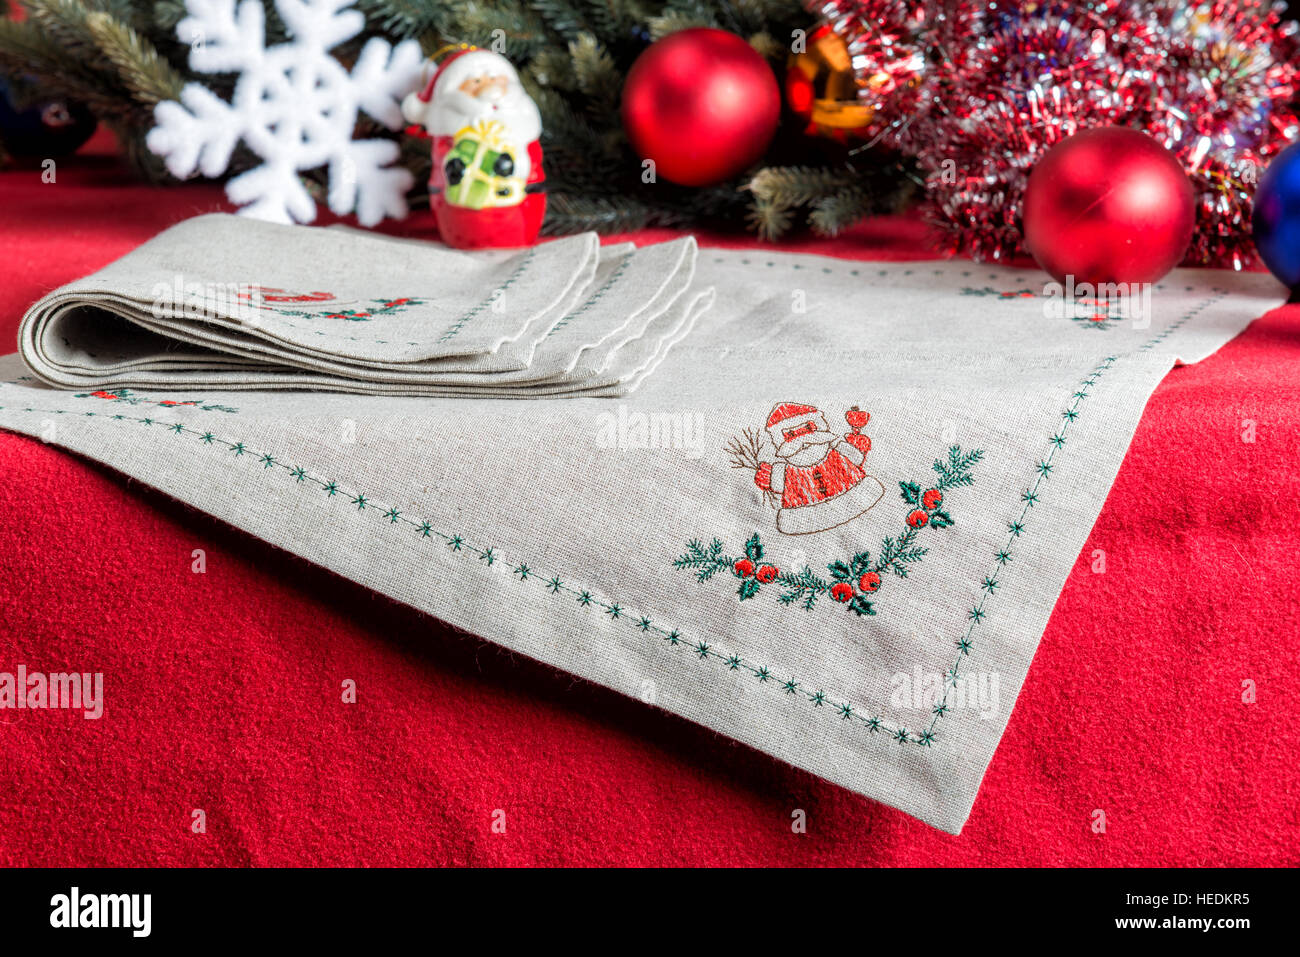 Napkins With Embroidery On The Background Of Christmas Decorations Stock Photo Alamy